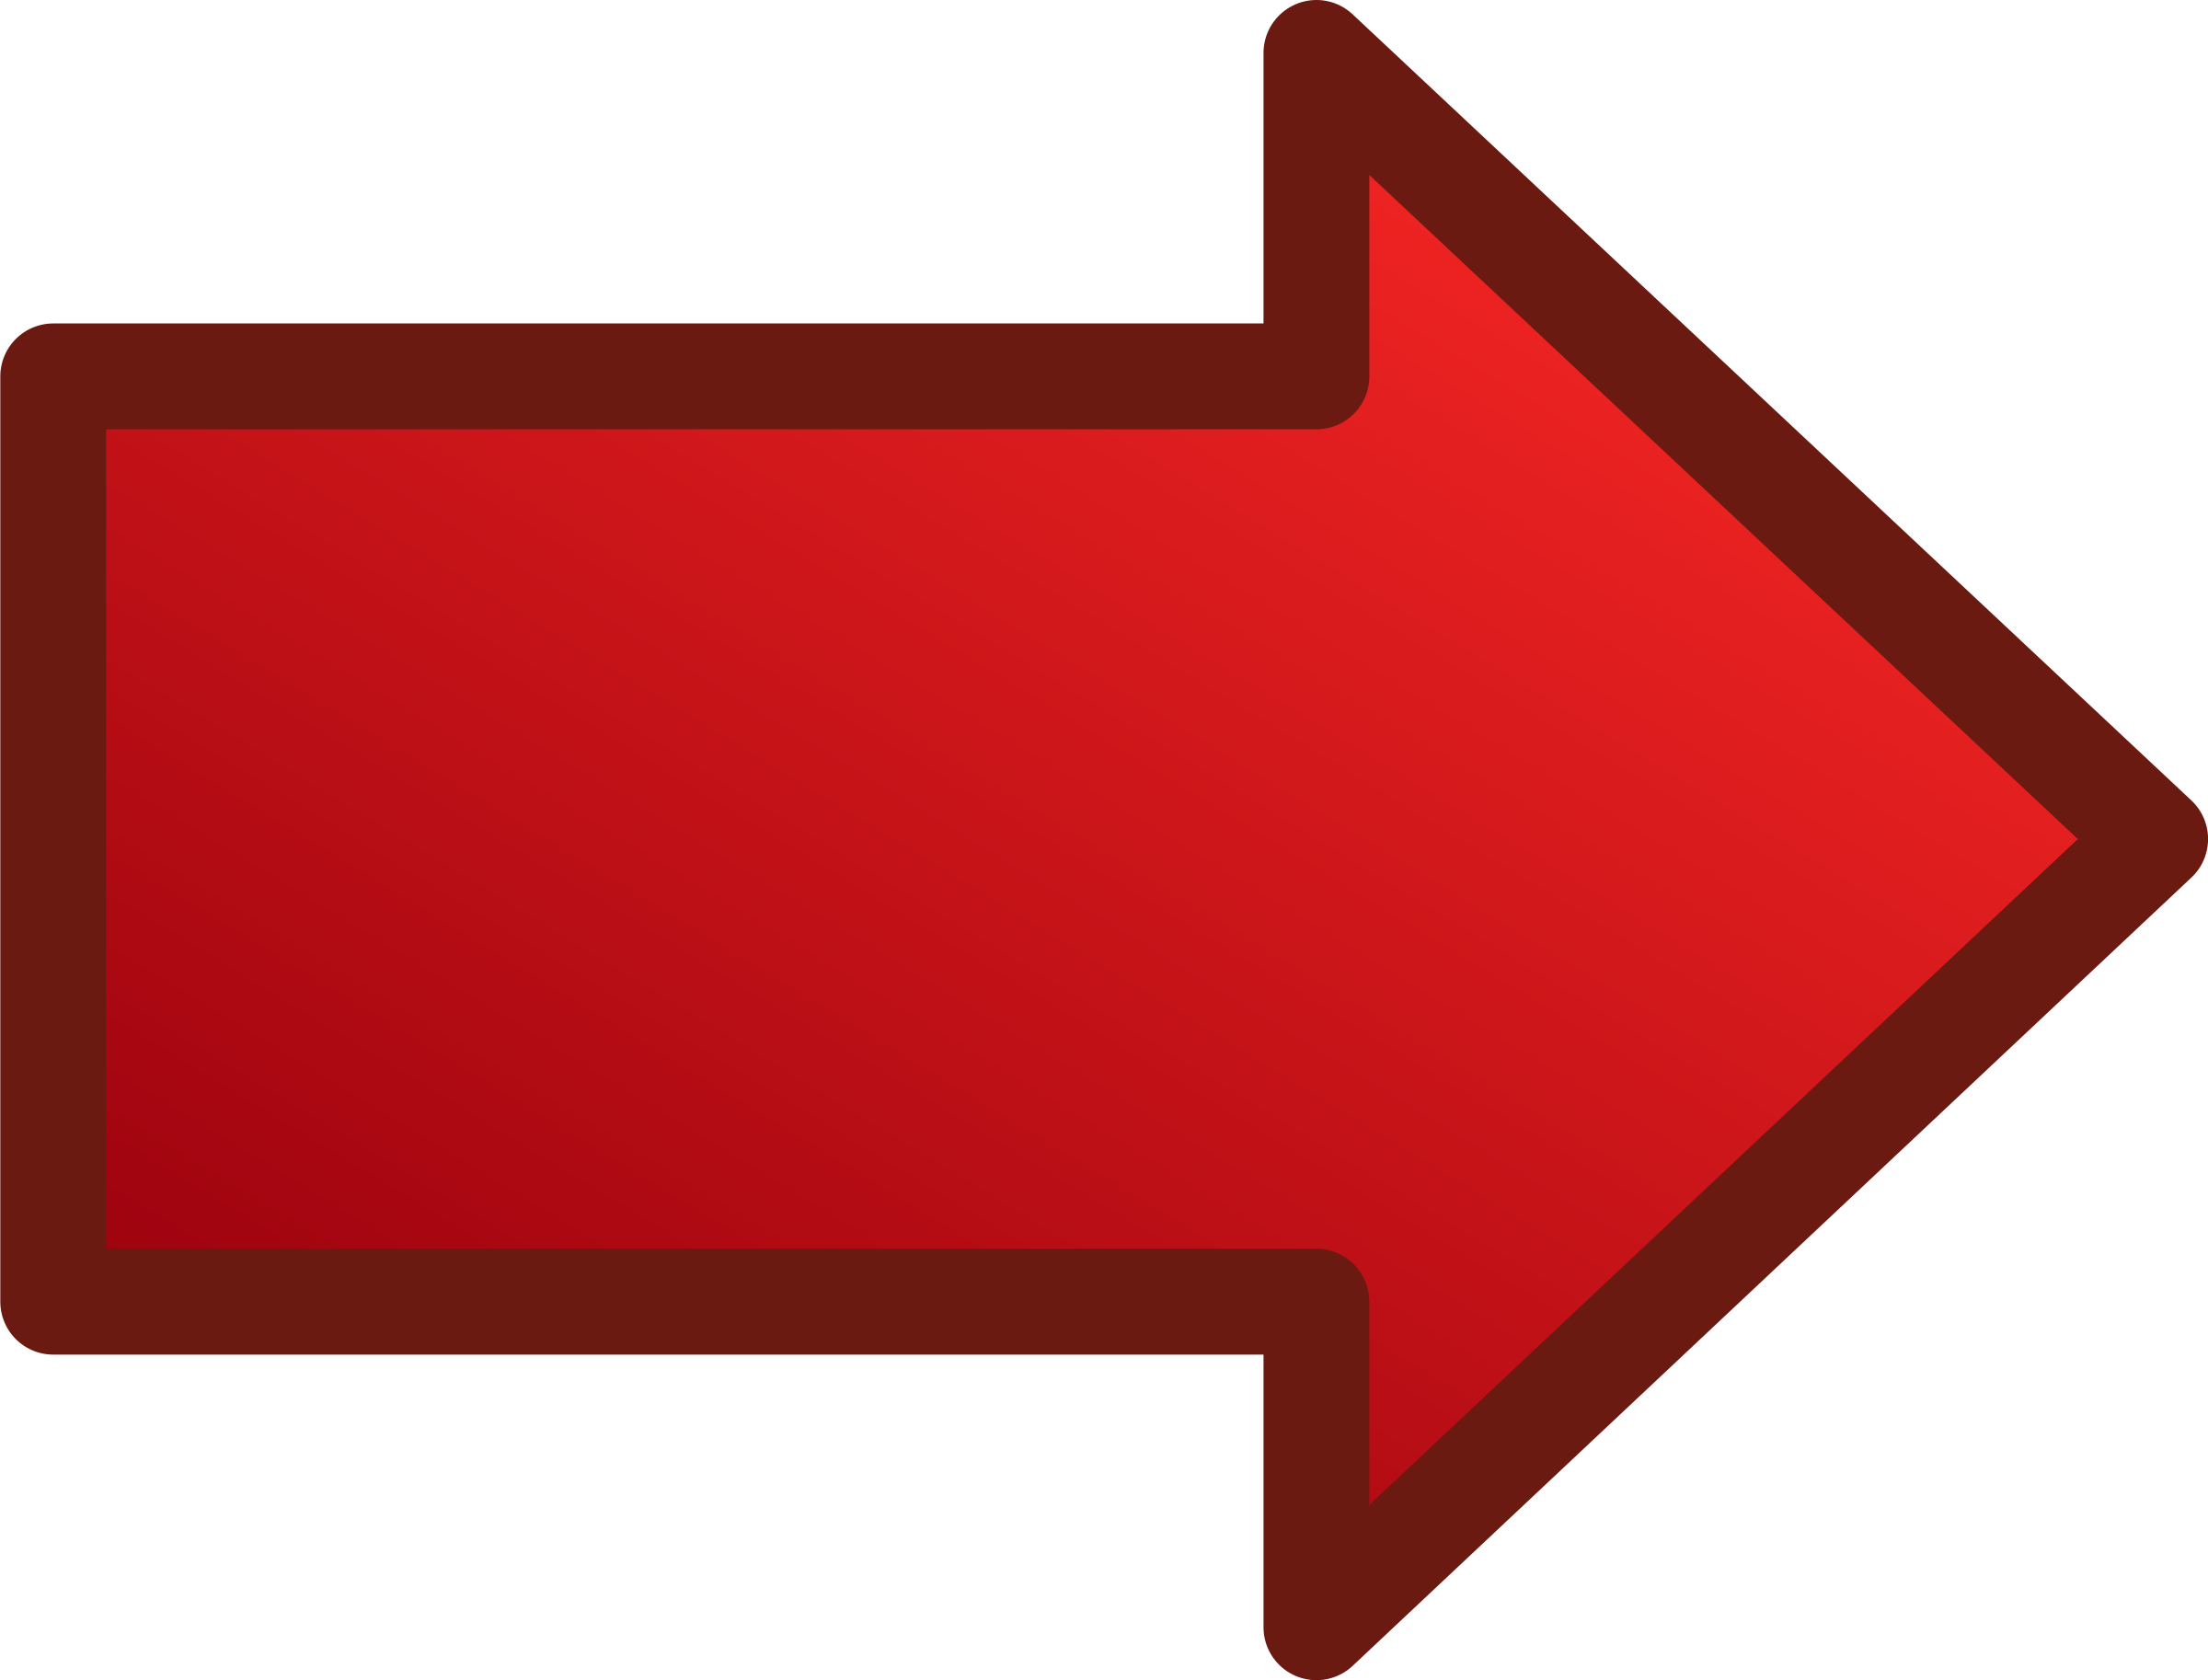 Dark Red Png Arrow 6433